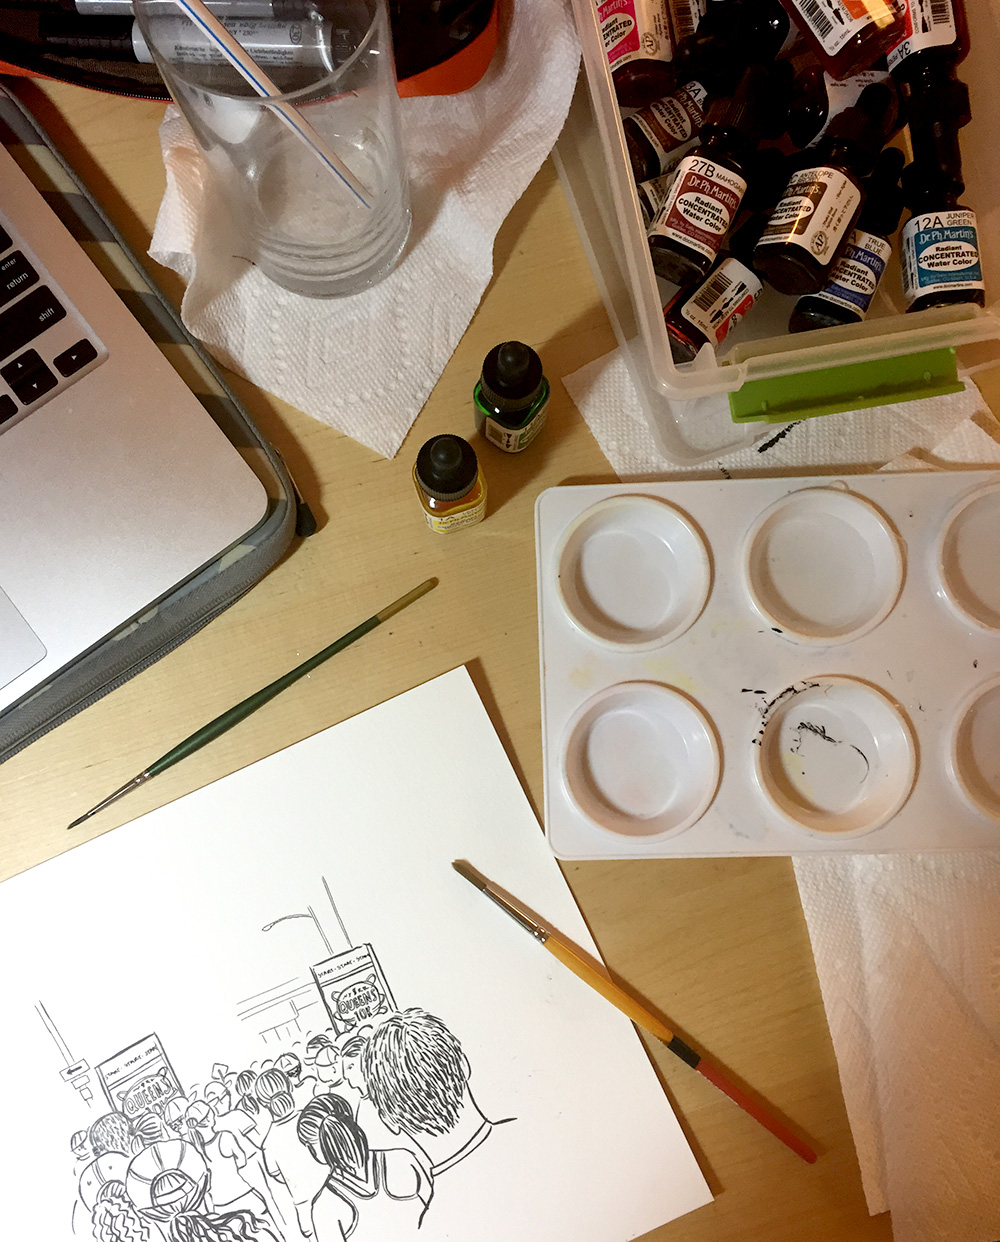 I draw in a tiny corner of our kitchen table!